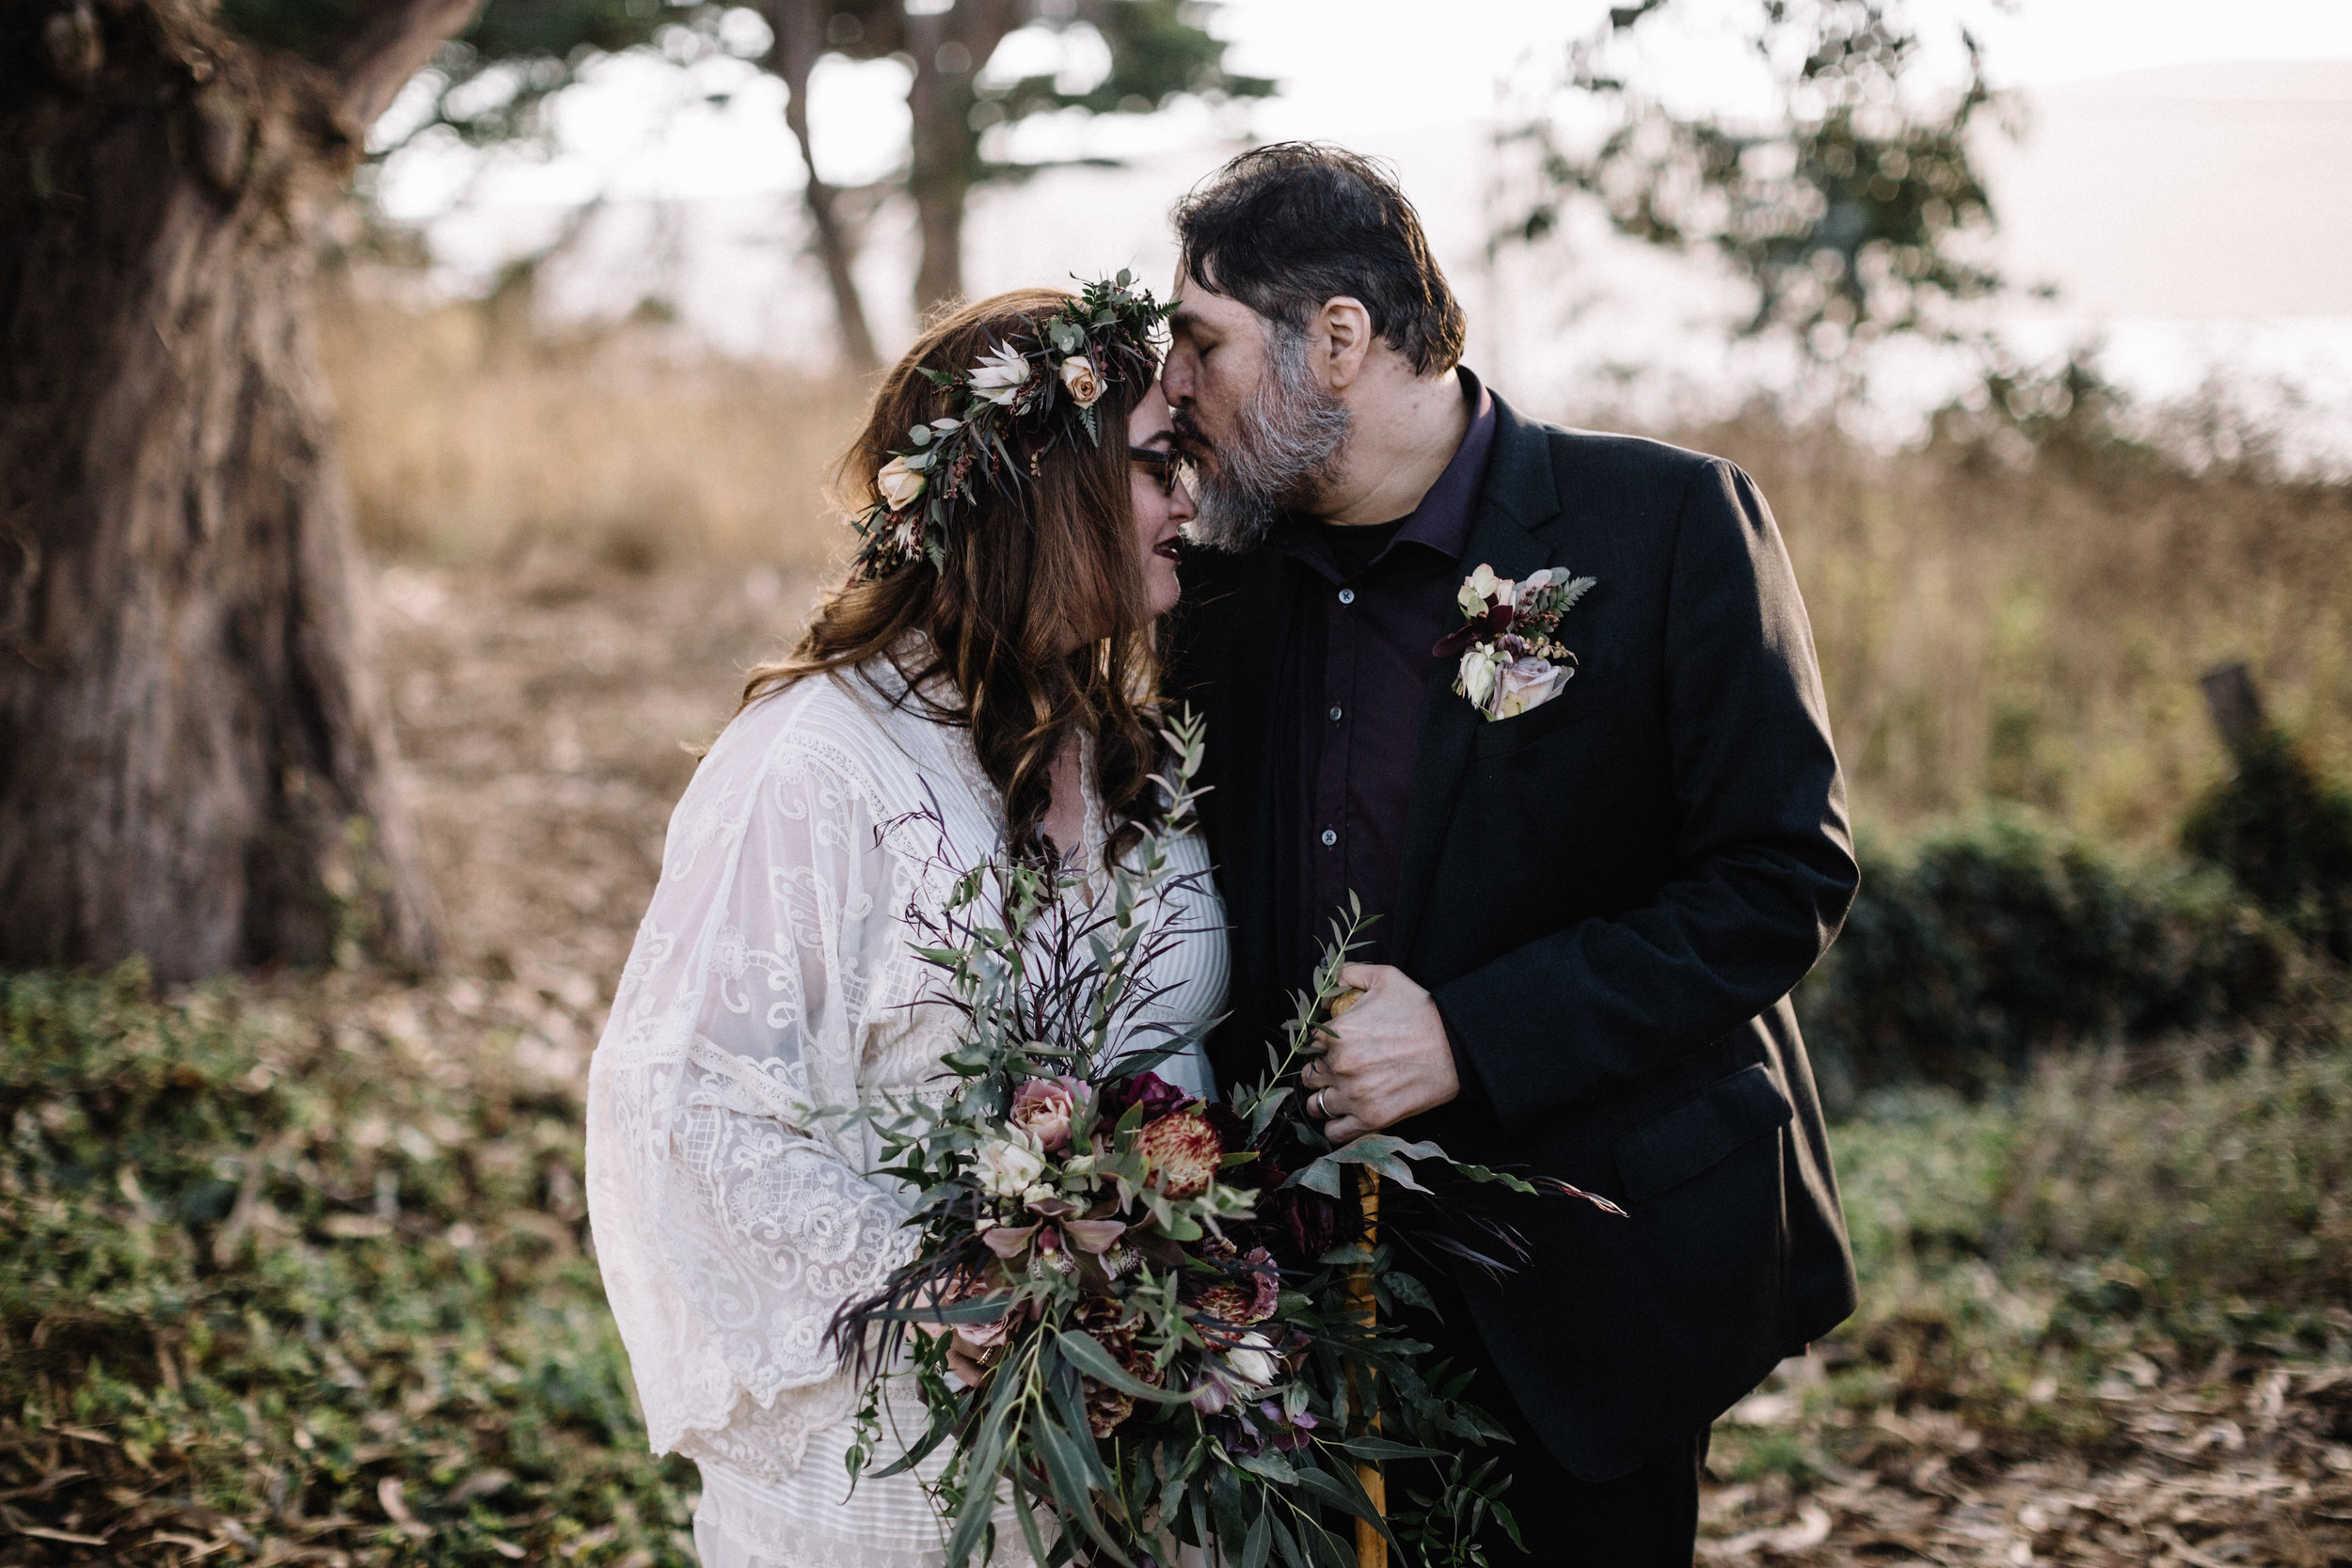 Wild bridal bouquet with soft greens and dark flowers by Venn Floral at Straus Home Ranch photographed by Lucille Lawrence.